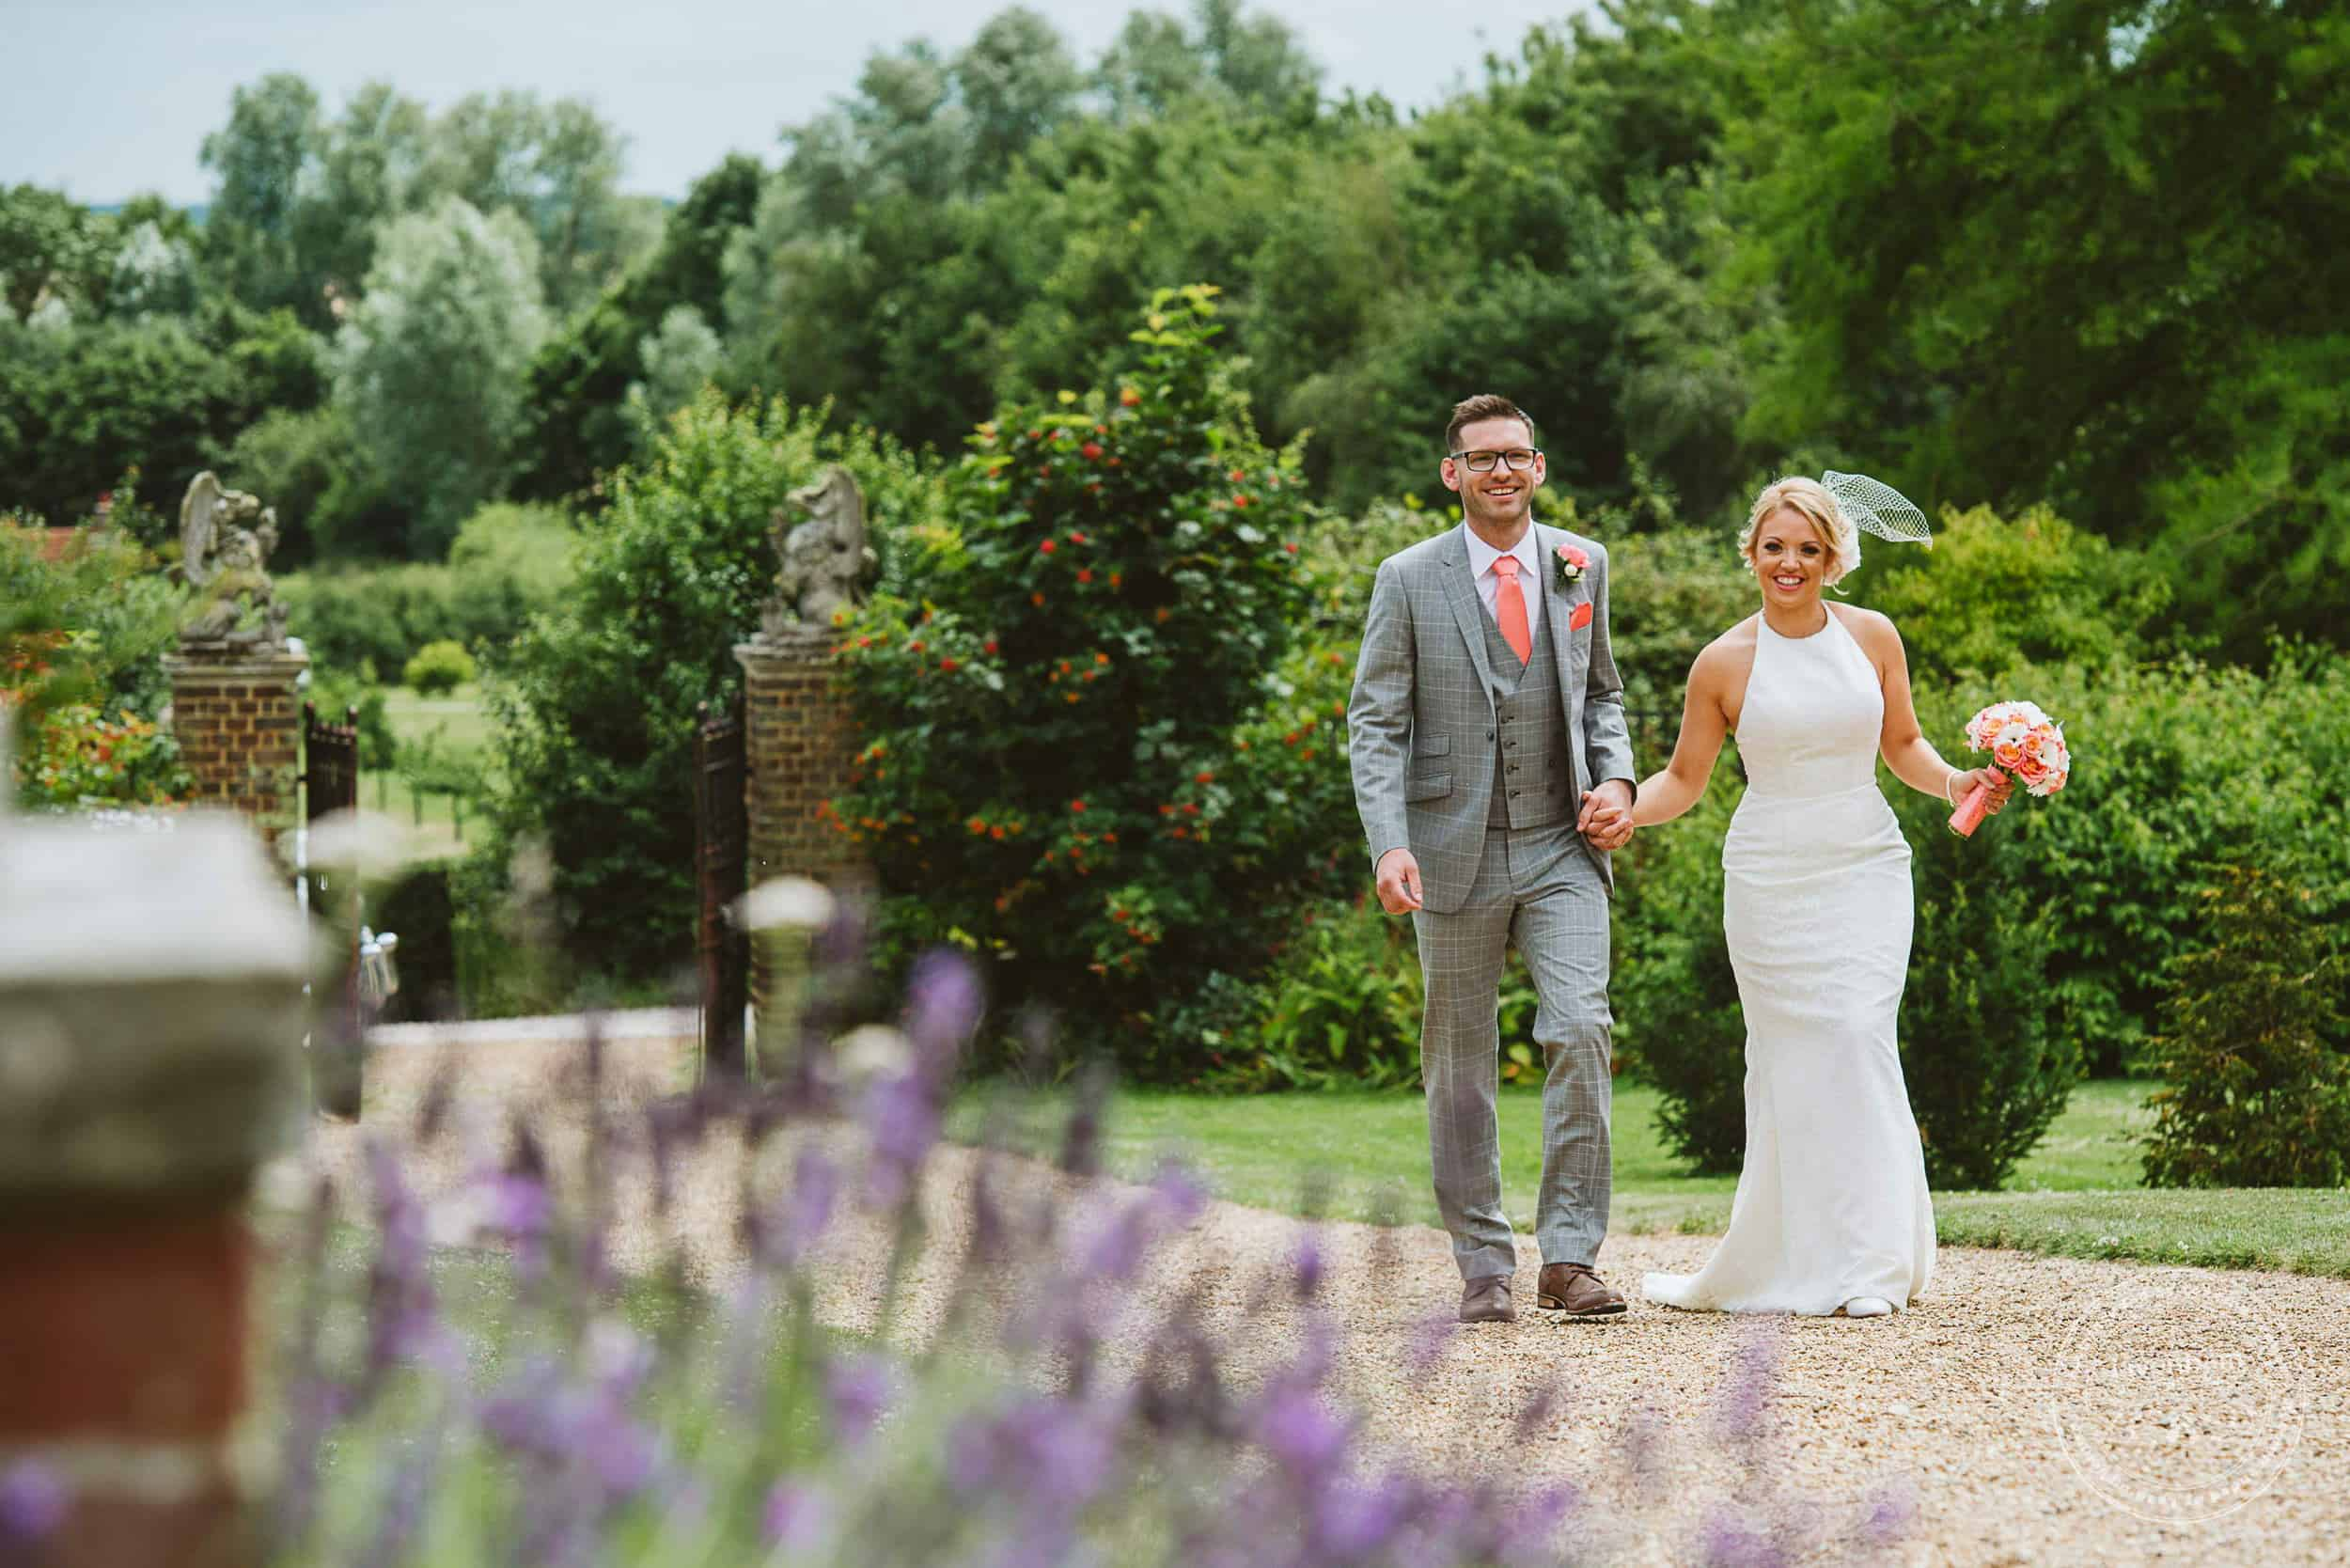 140717 Layer Marney Wedding Photography by Lavenham Photographic 066